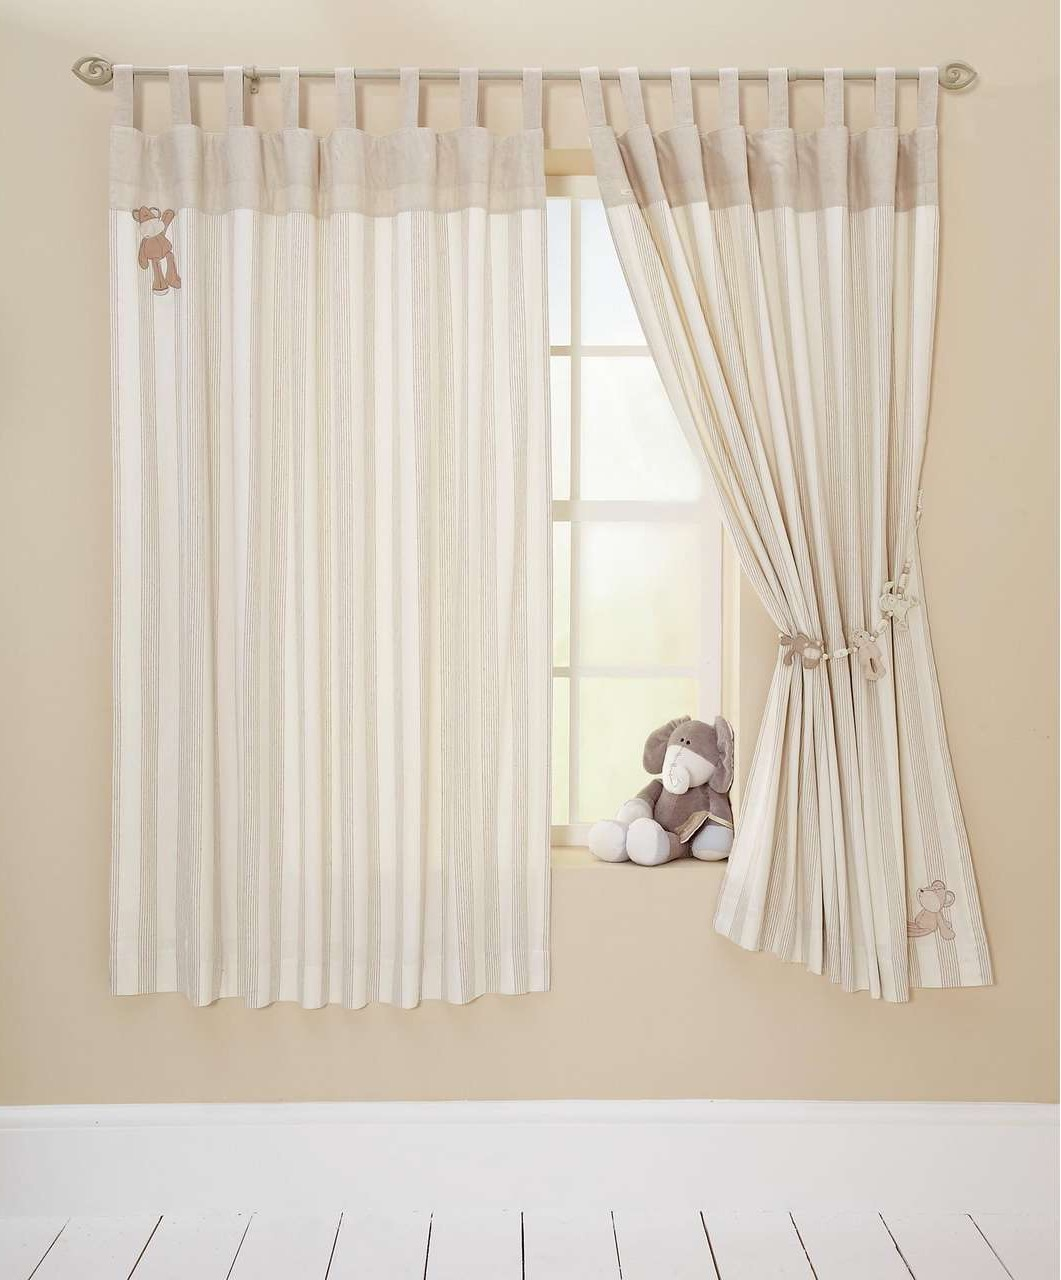 Minimalist Nursery Curtains (Image 8 of 12)